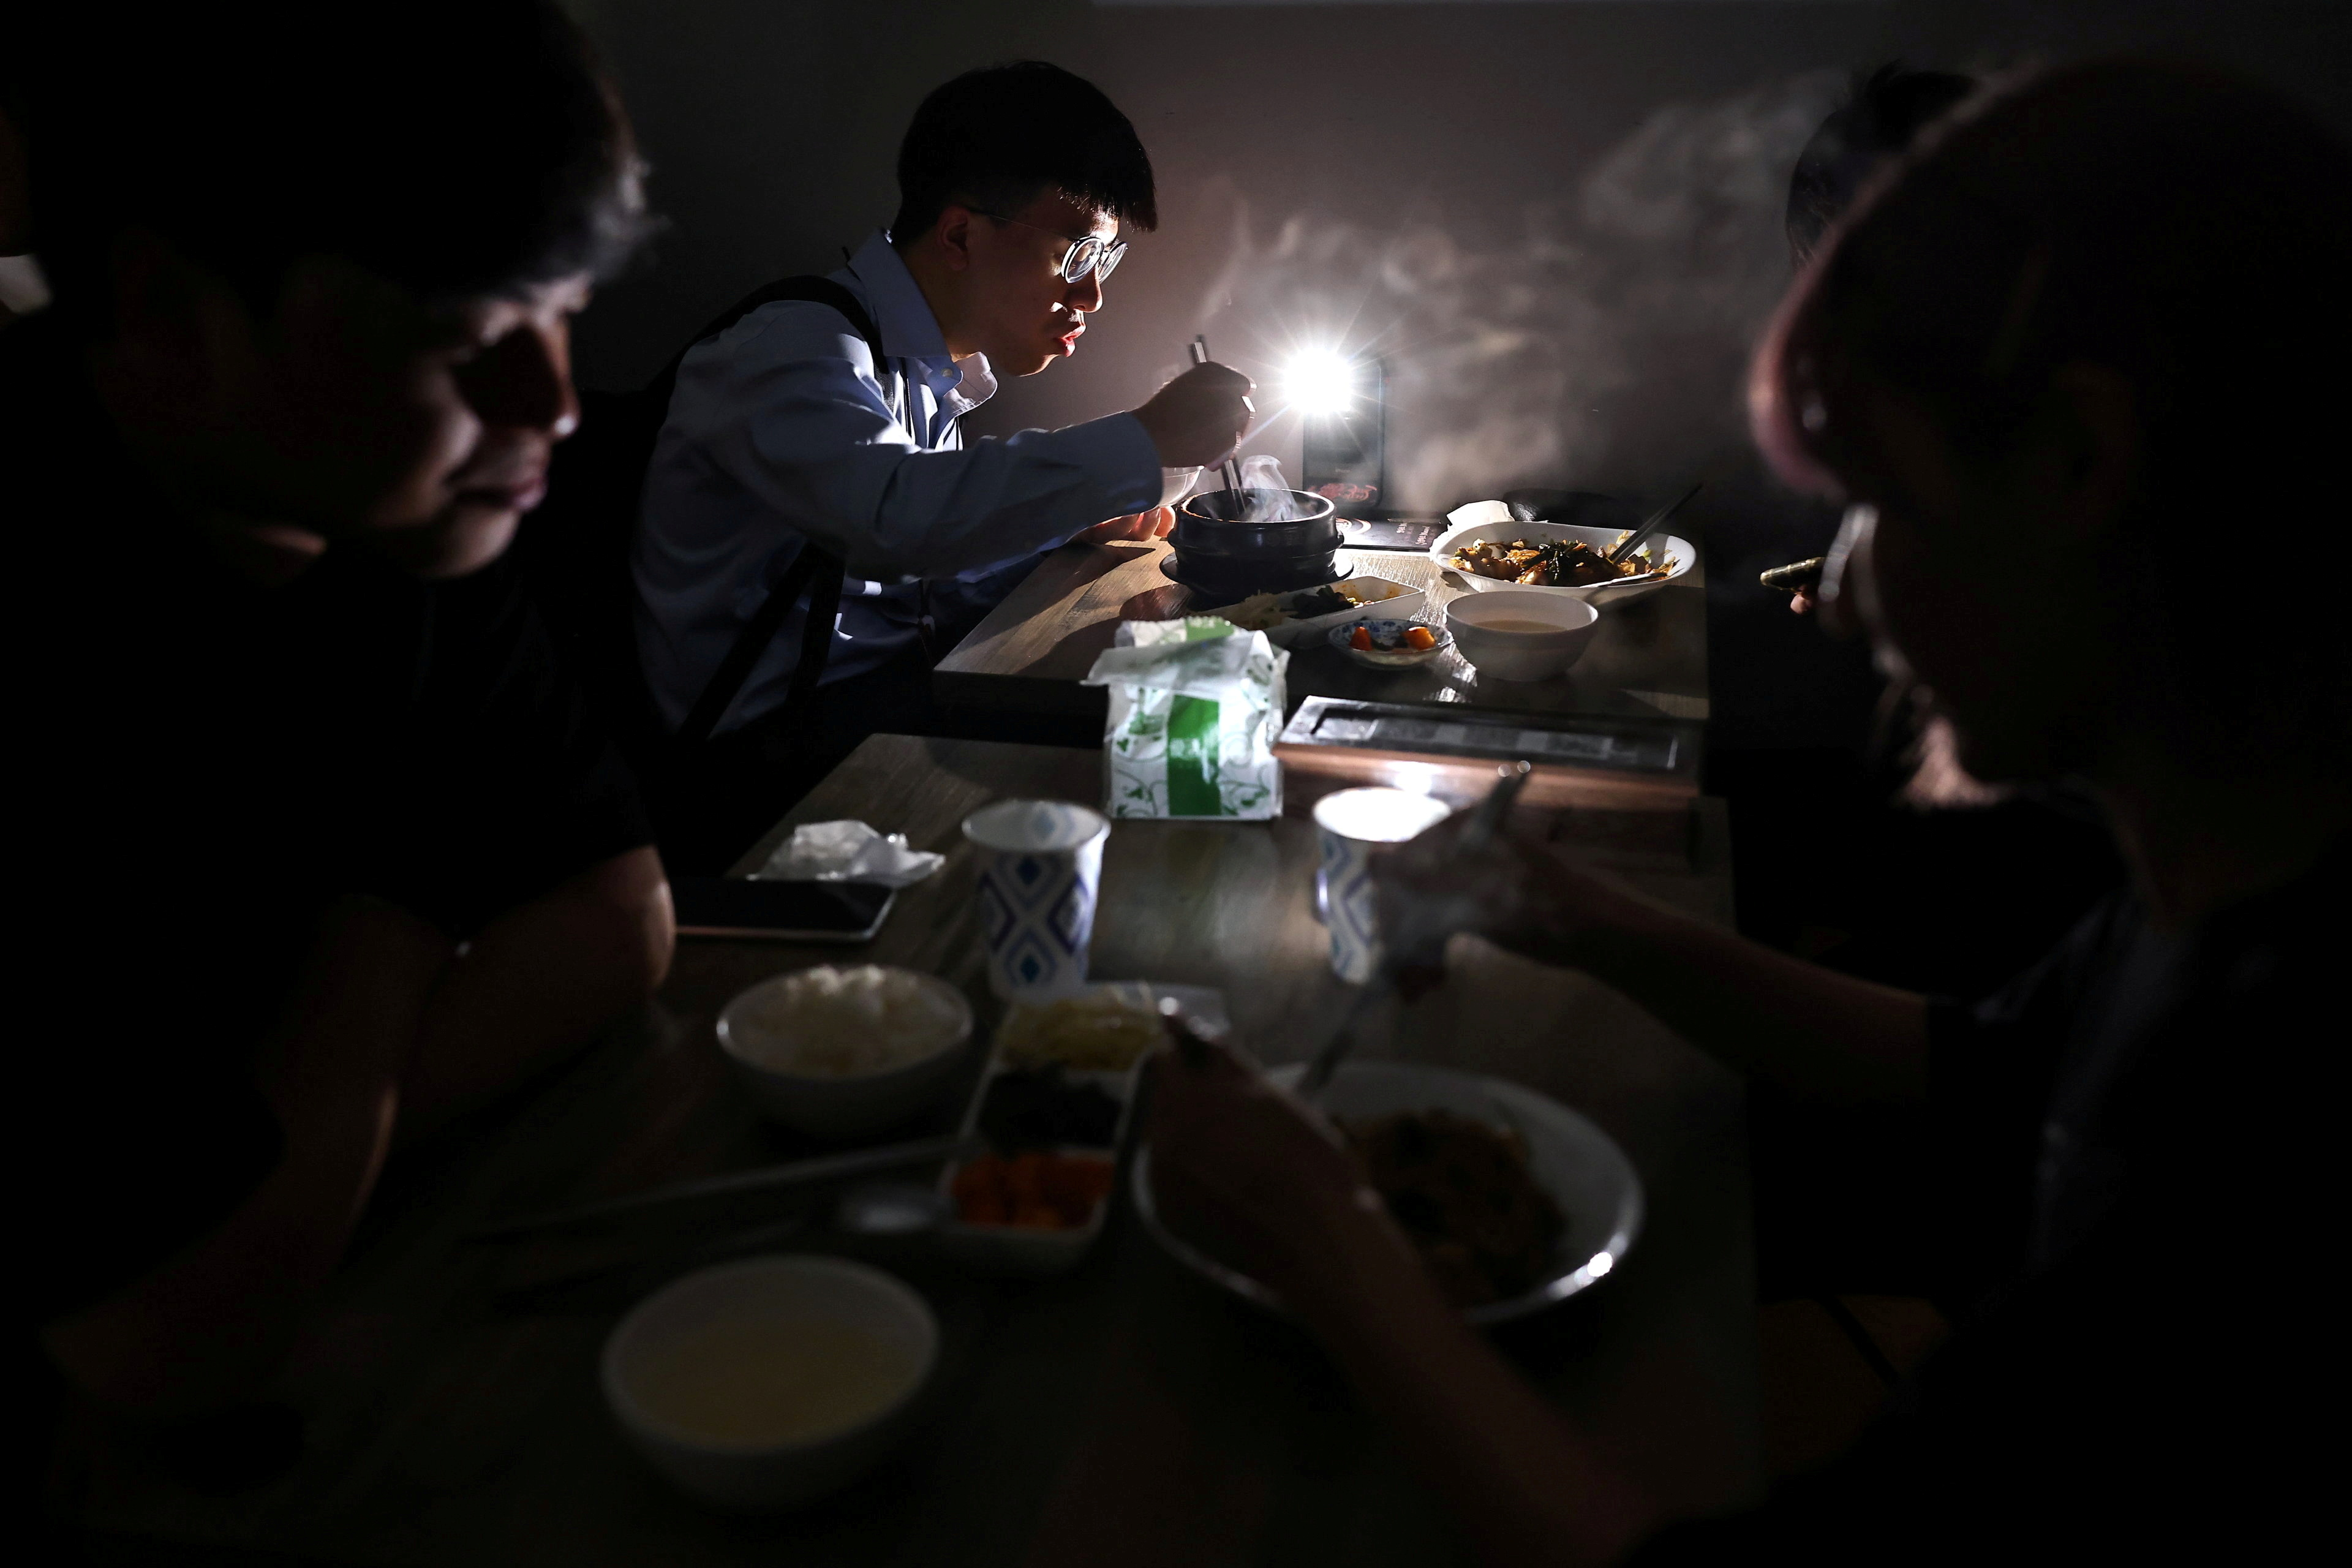 People eat using the light from their phone while experiencing a blackout due to an outage at a power plant, in Taipei, Taiwan, May 13, 2021. REUTER/Ann Wang